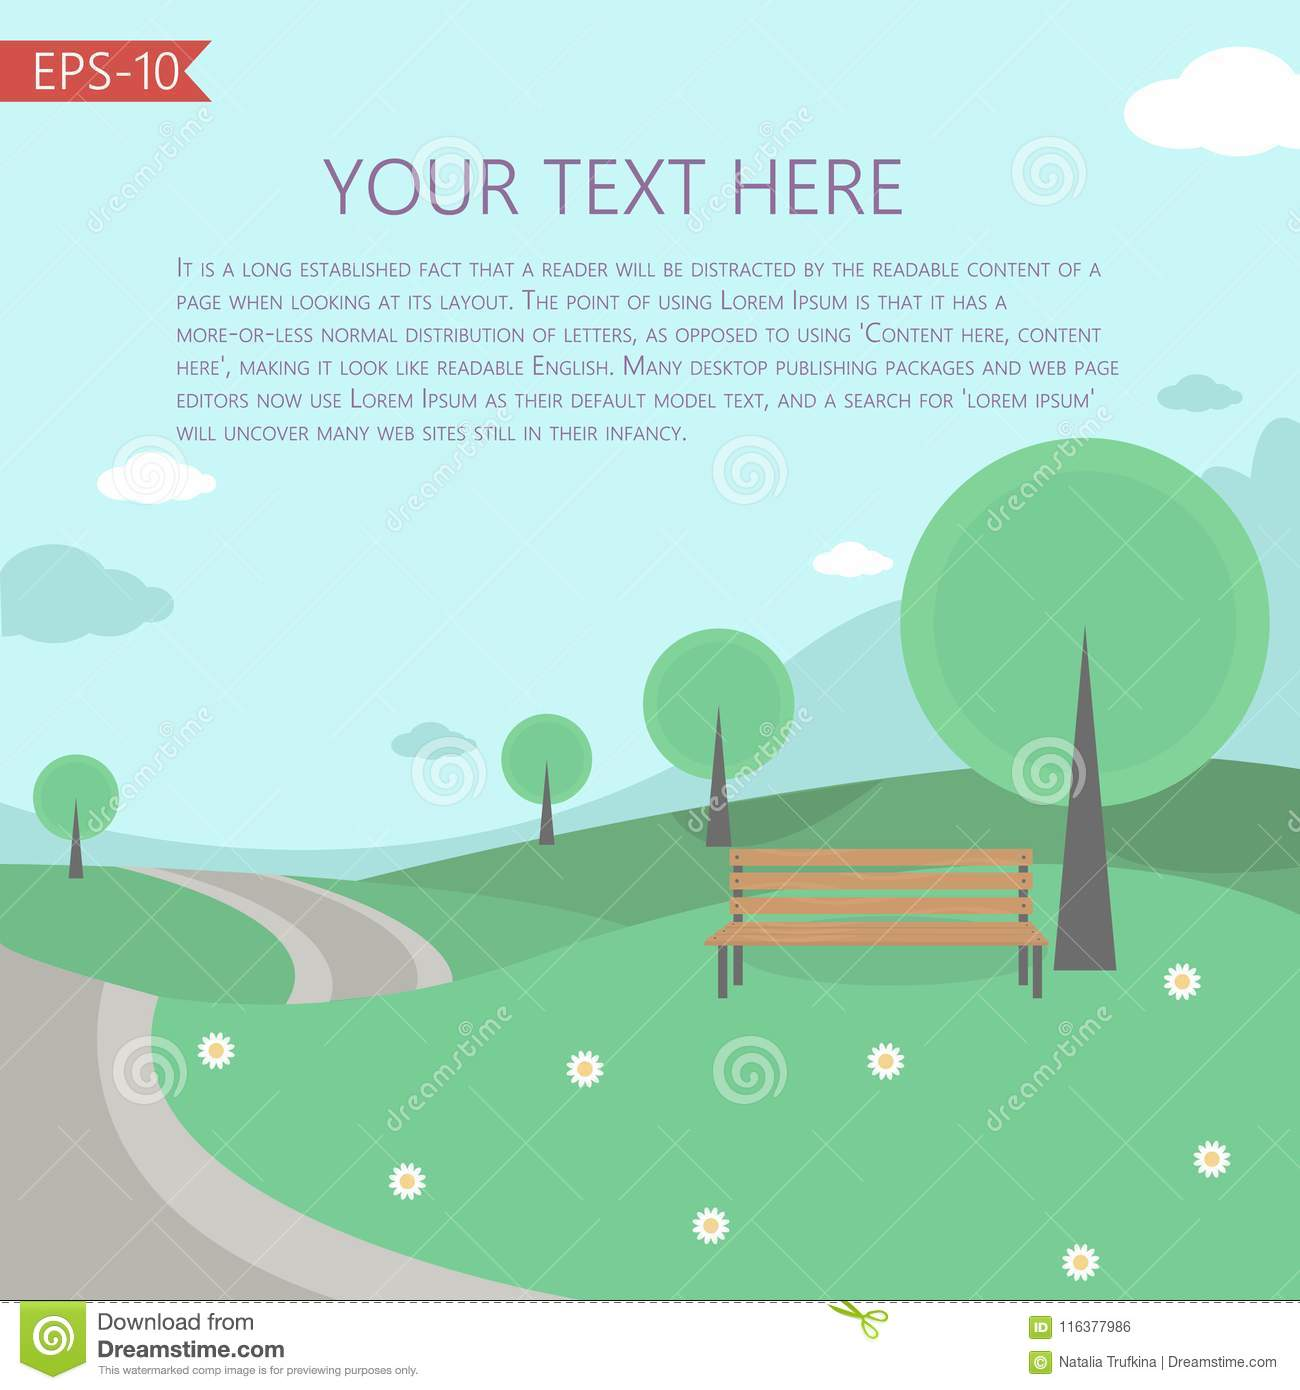 Vector Illustration With Fairy Tale LandscapeTemplate